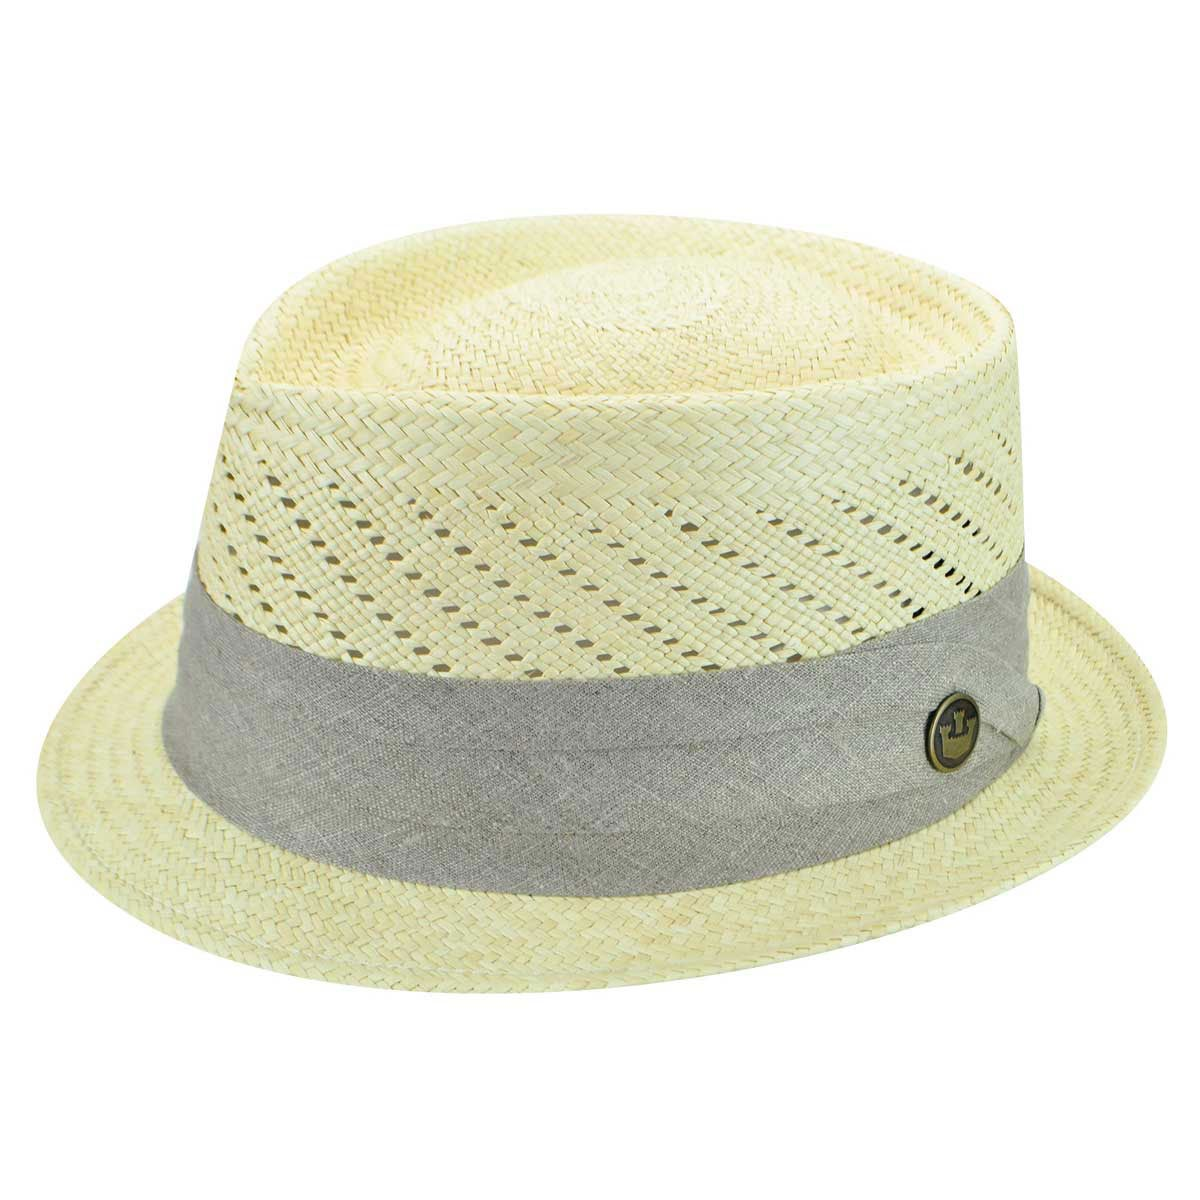 1960s -1970s Men's Clothing Garzon Guillermo Panama Trilby $180.00 AT vintagedancer.com